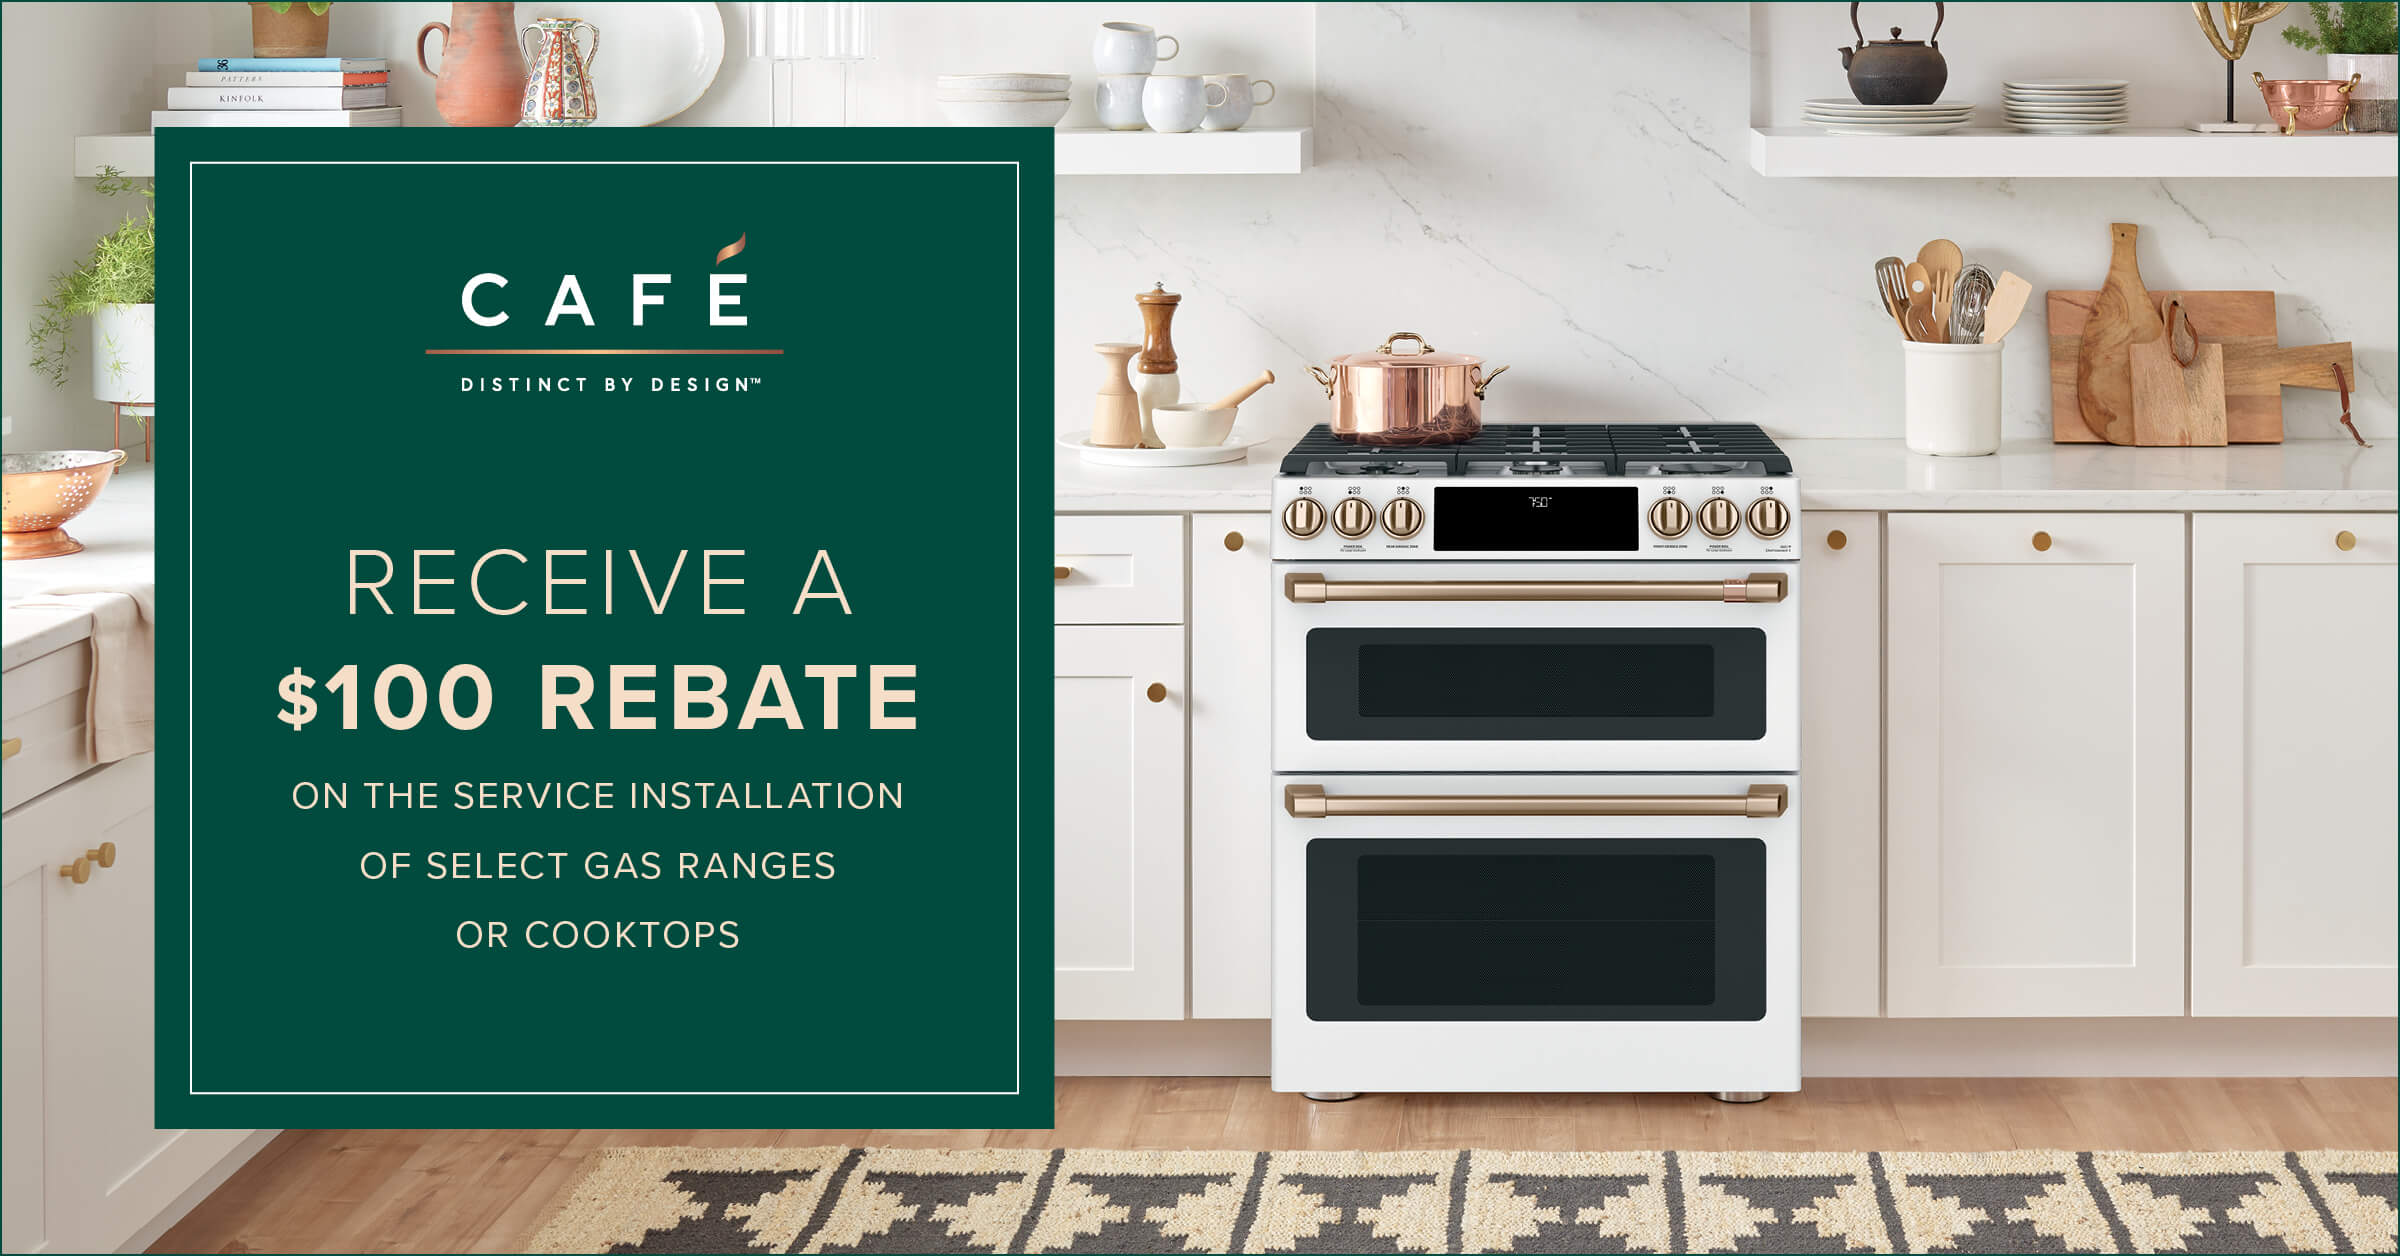 Cafe. recieve a $100 Rebate on the installation of gas ranges or cooktops.